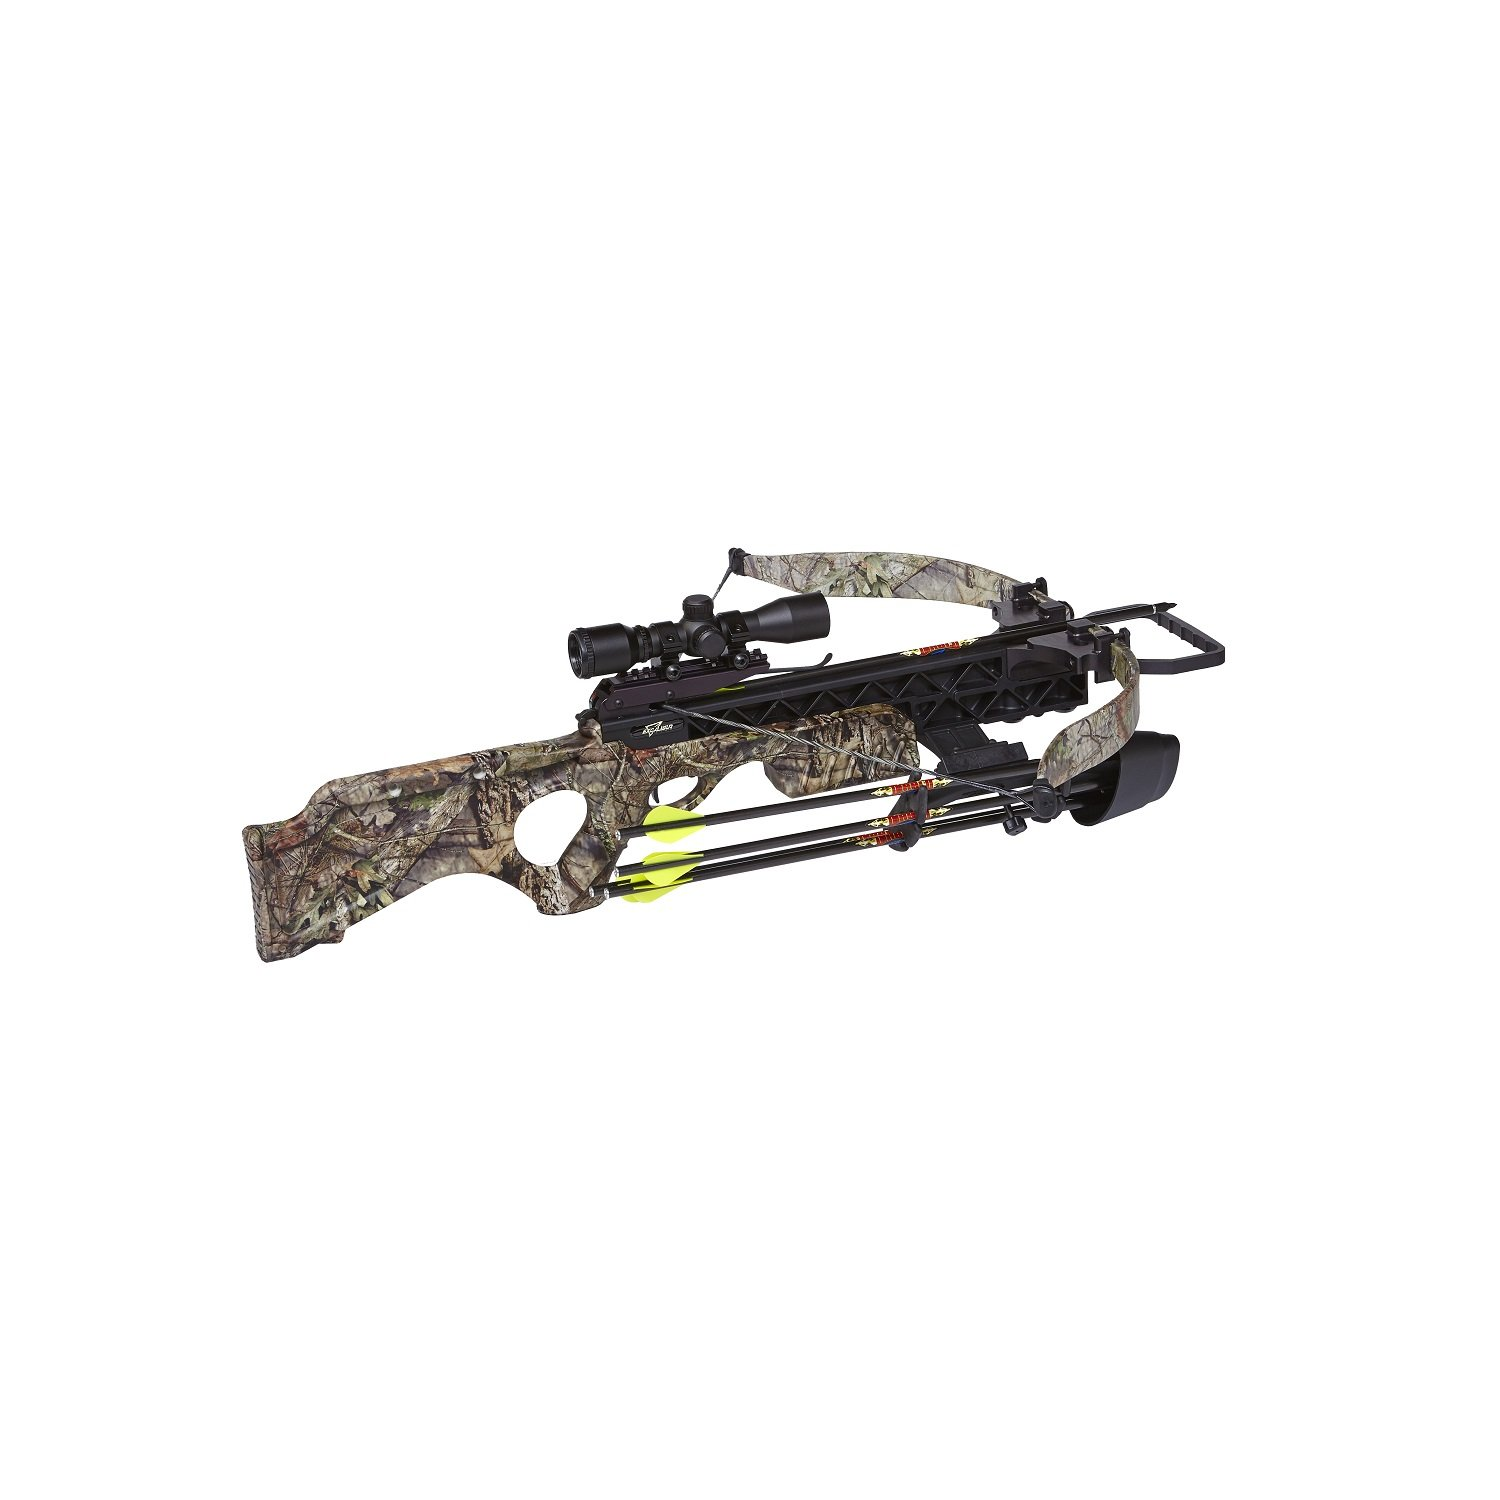 Excalibur Crossbow Null Matrix SMF Grizzly Crossbow with Lite Stuff Package/Vari-Zone Scope (Draw Weight : 200-Pound), Mossy Oak Break-Up Country, Recurve by Excalibur (Image #1)